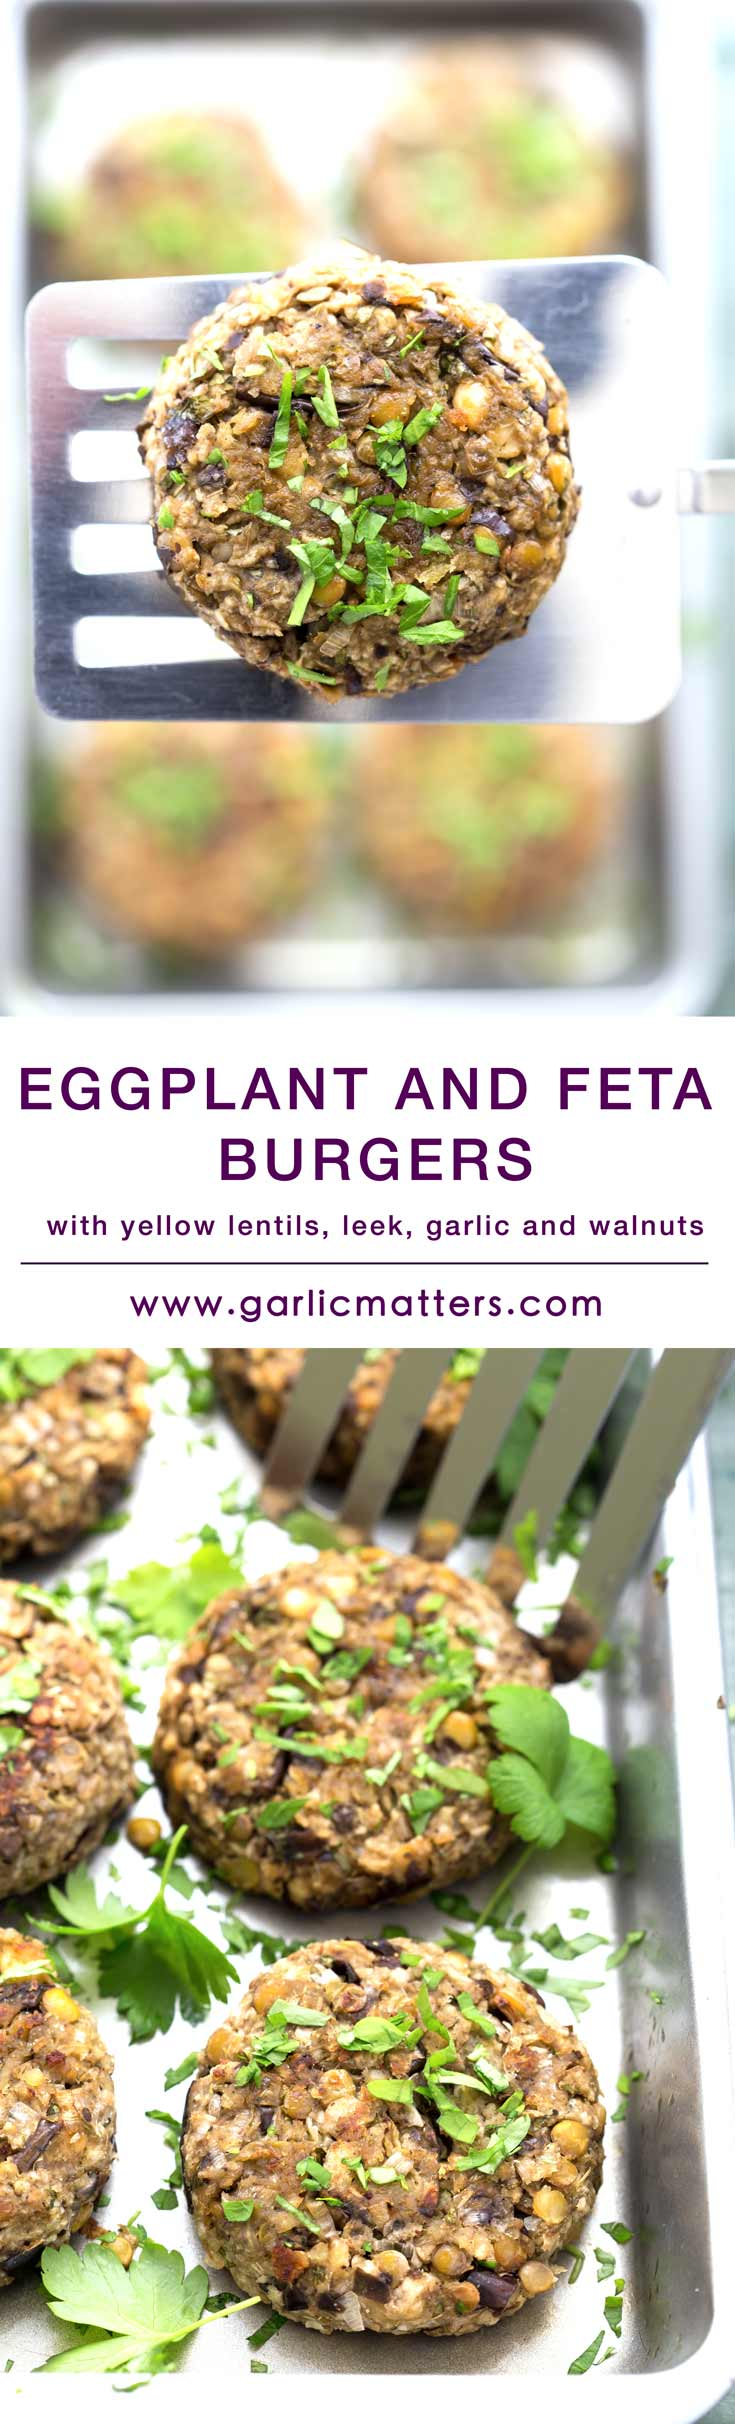 Eggplant and Feta Burgers Recipe - delightful, vegetarian patties made with toasted nuts, cumin, lentils, leeks & garlic. Easy, healthy and delicious! Perfect for lunch or dinner.